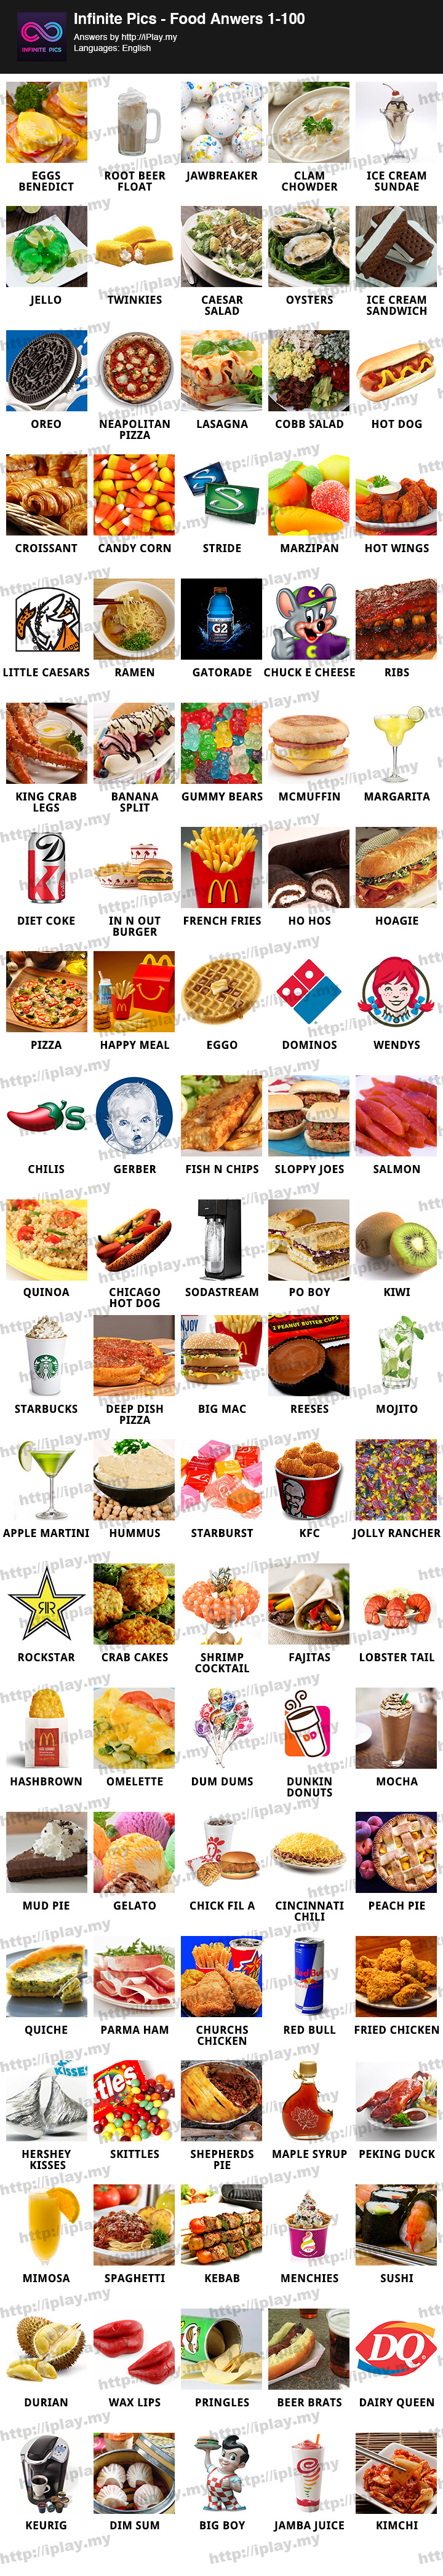 Answers to 100 pics food logos vector logos - 100 pics solution cuisine ...